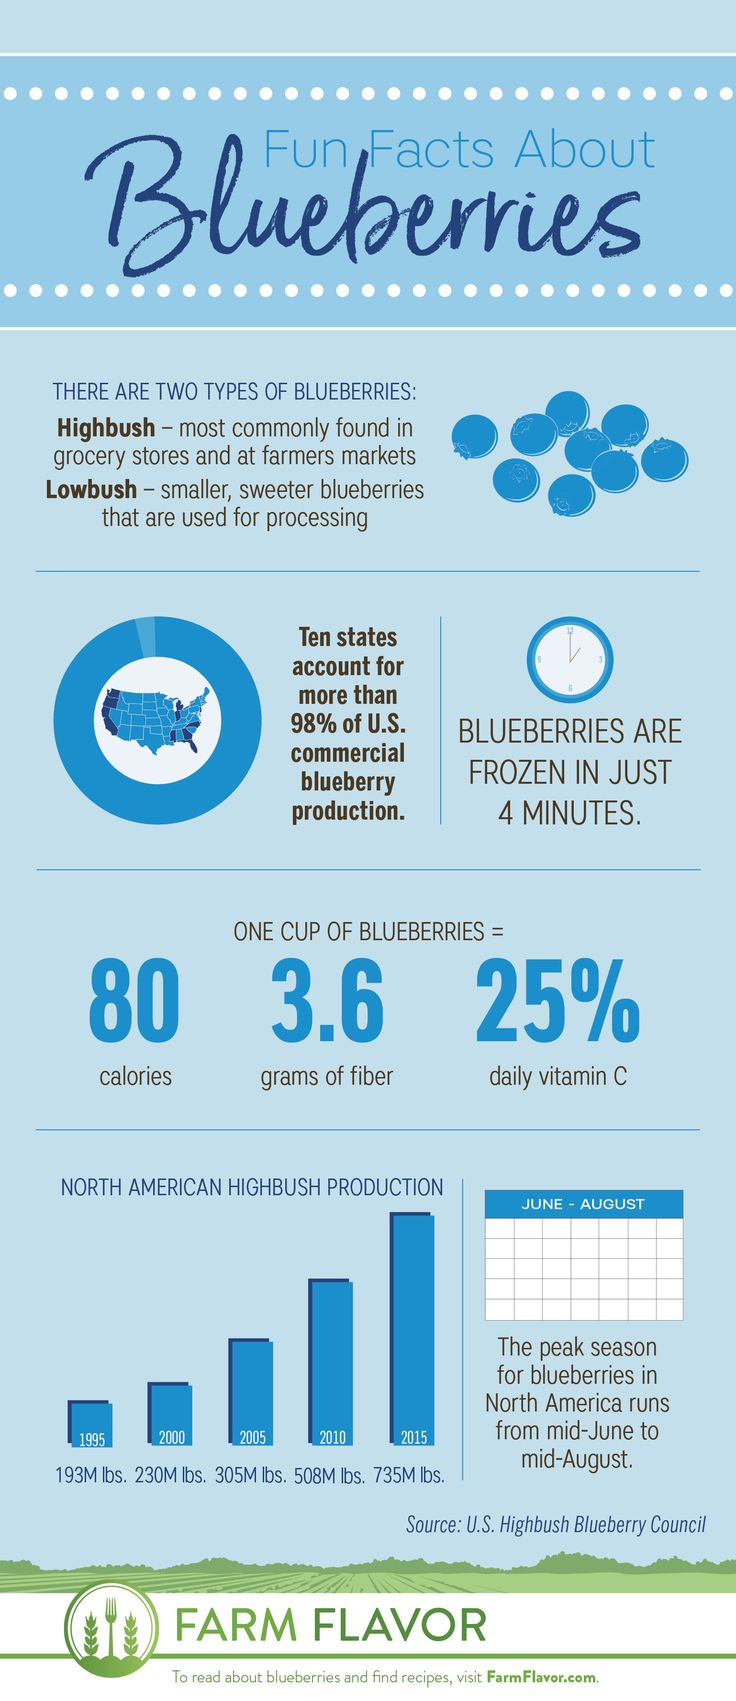 Check out fun farm facts about sweet summer blueberries! #blueberries #infographic #farmfacts #summer #july #facts